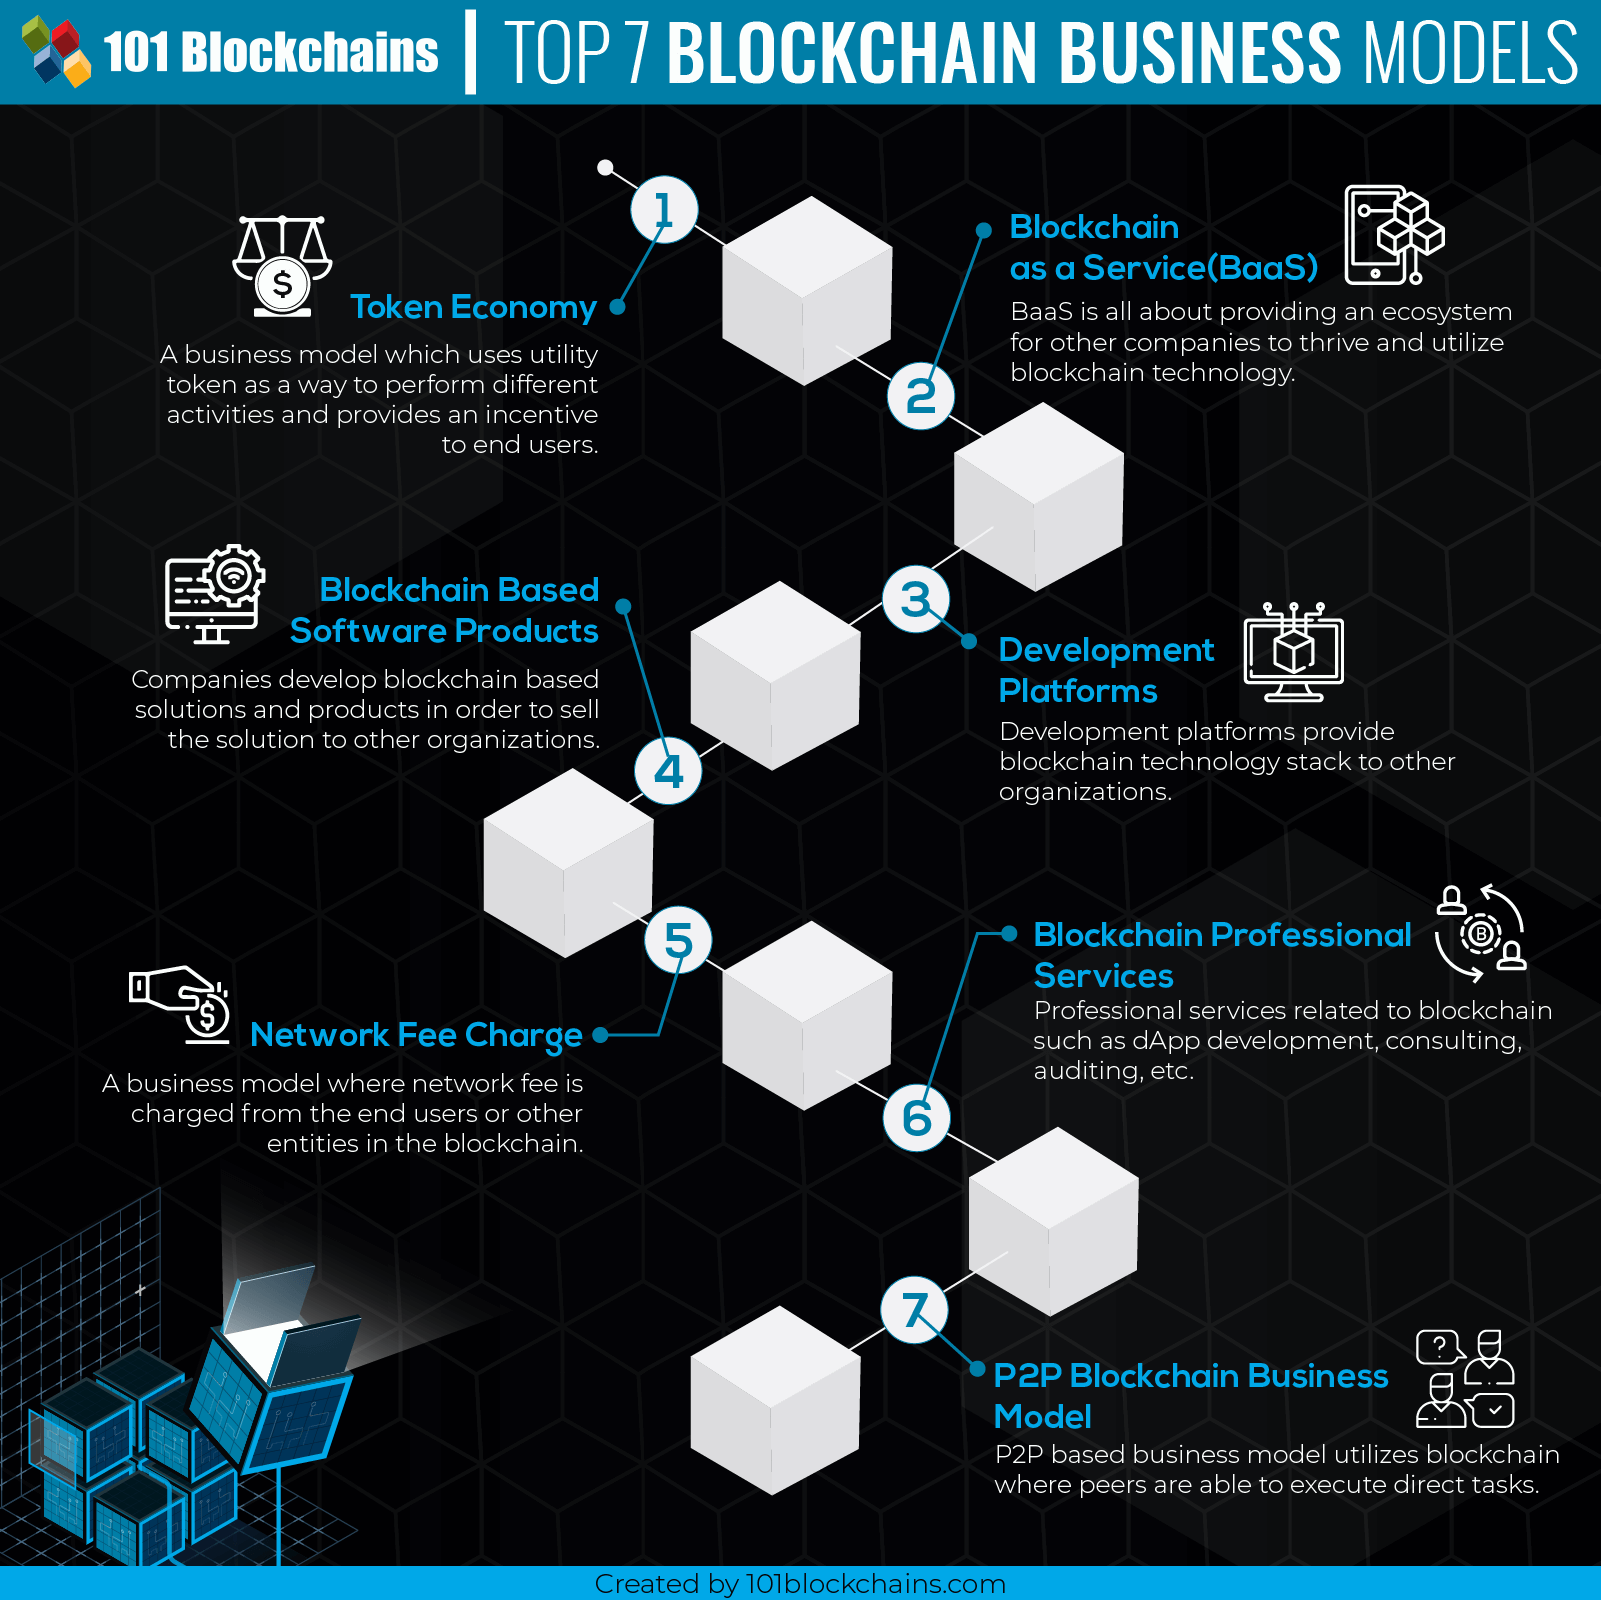 Top Blockchain Business Models